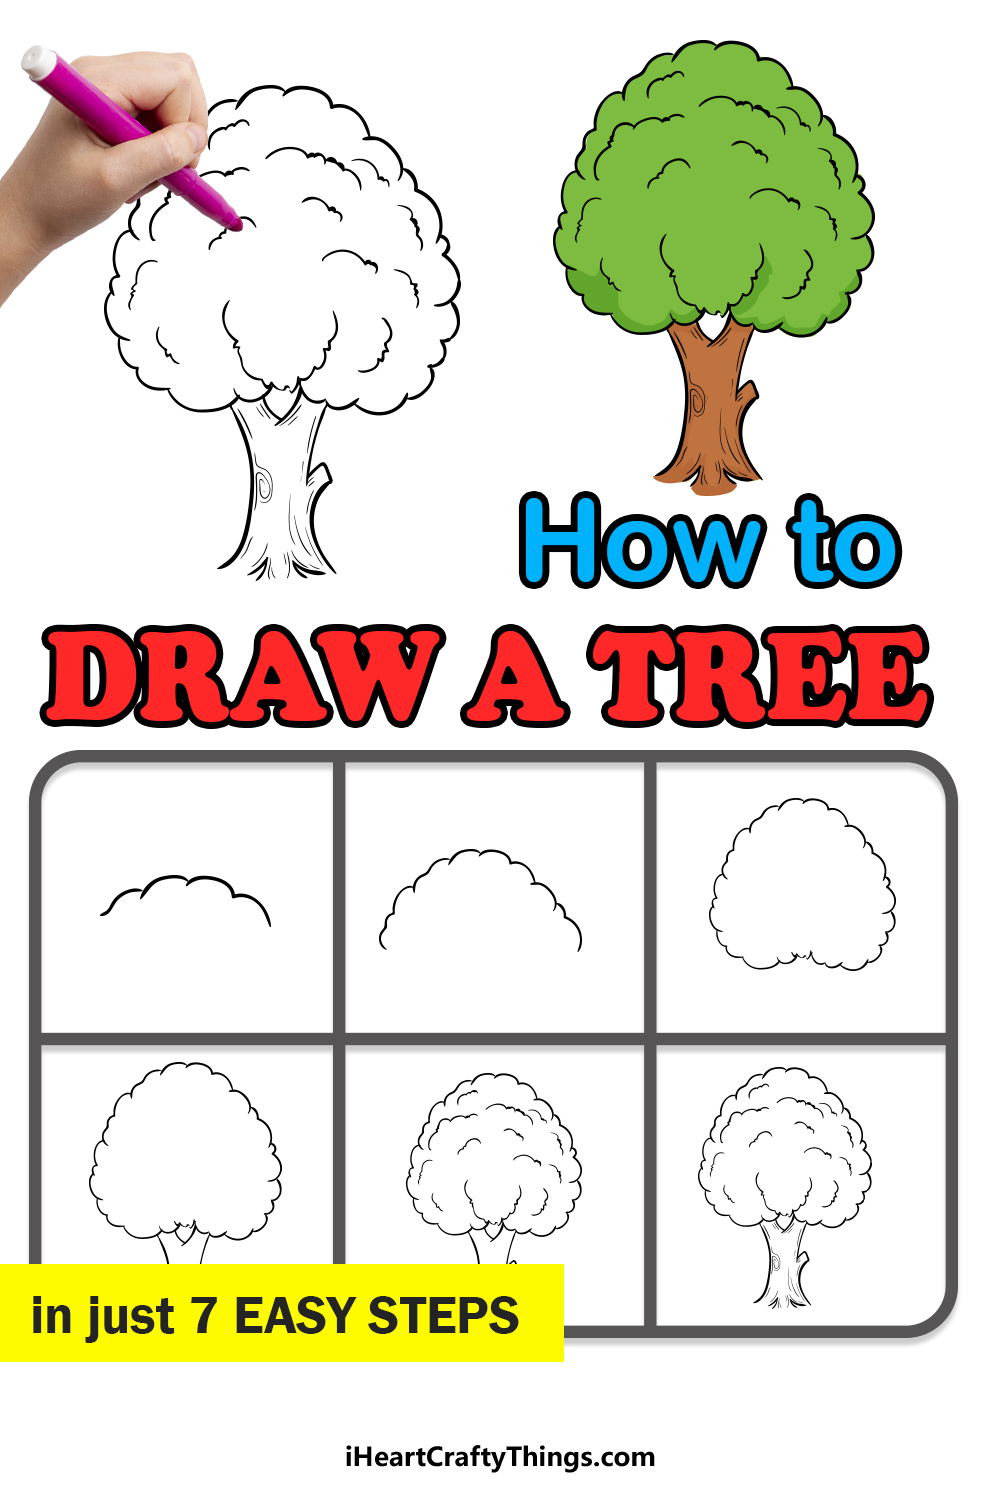 how to draw a tree in 7 easy steps